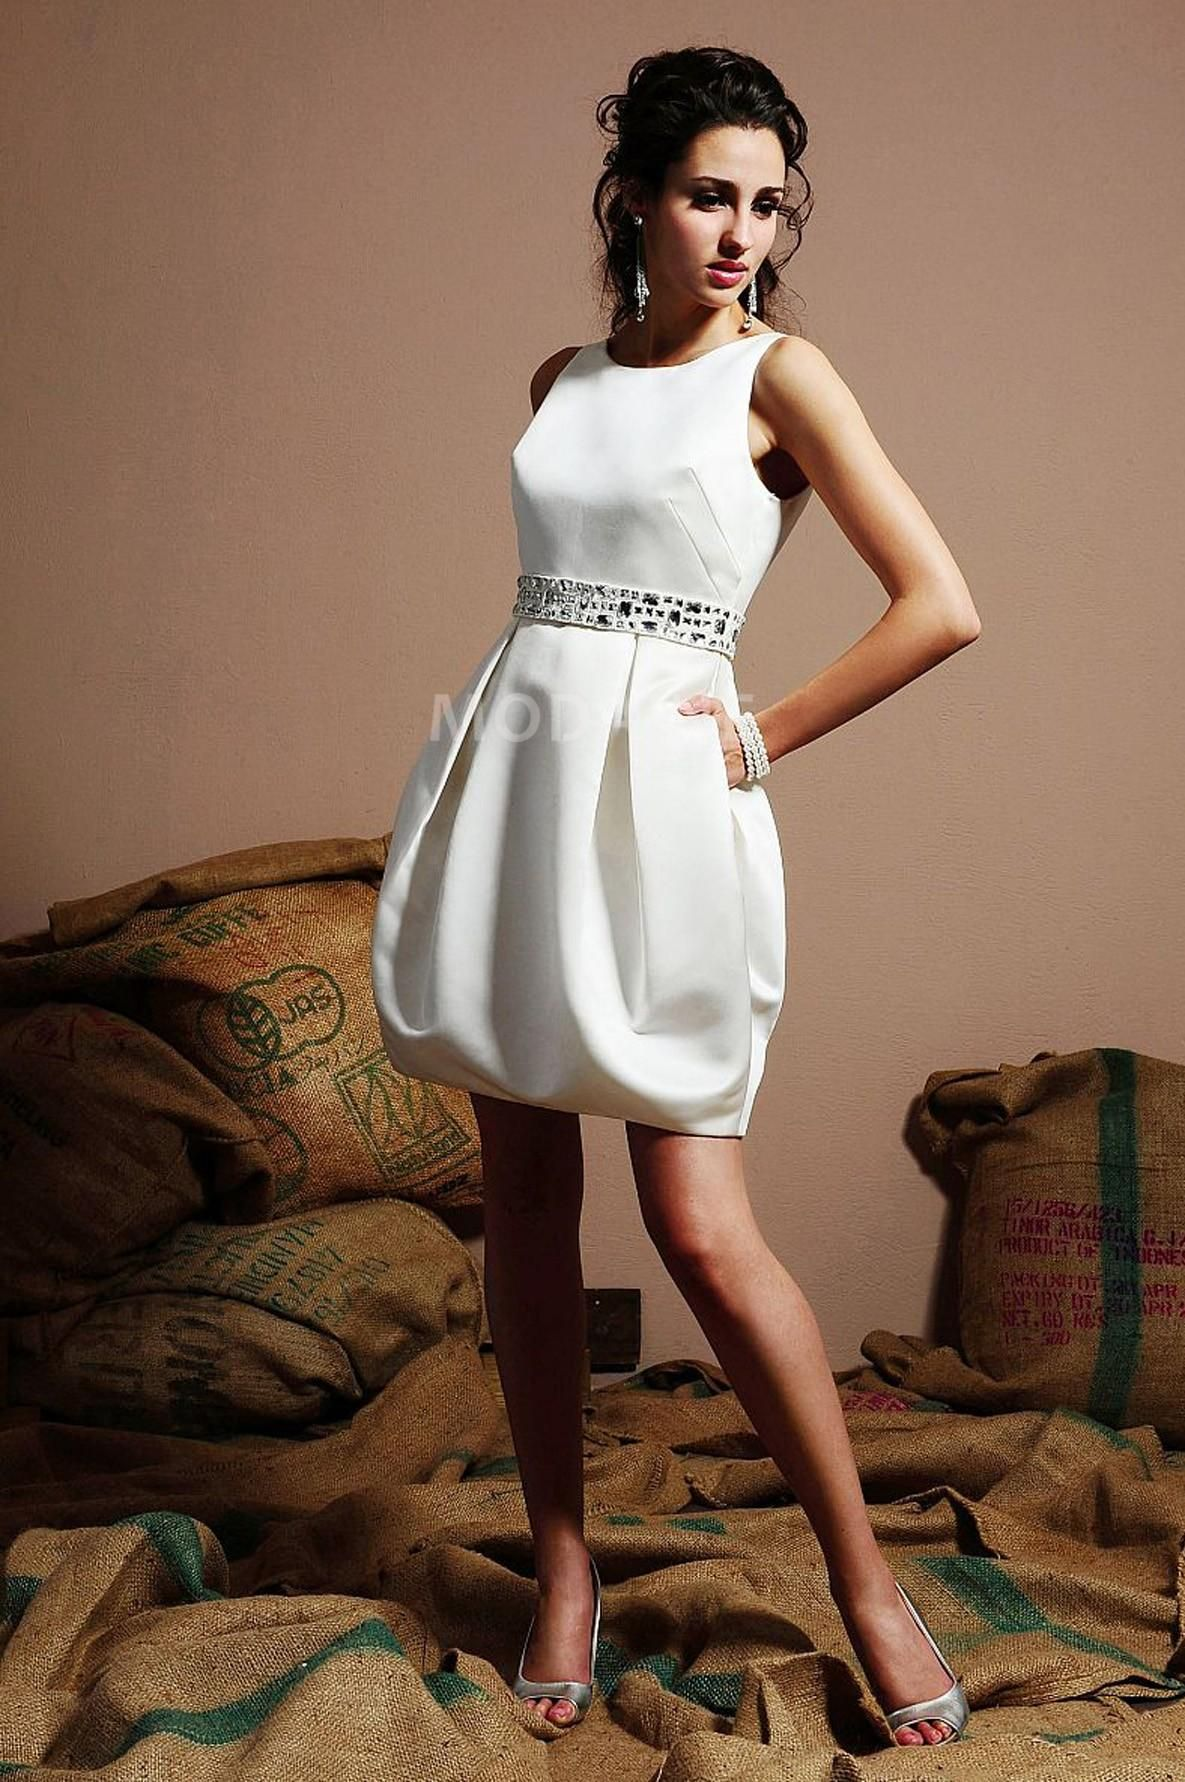 Casual wedding dresses with color  Robe mariage etat civil  Color dress  Pinterest  Mariage and Robes